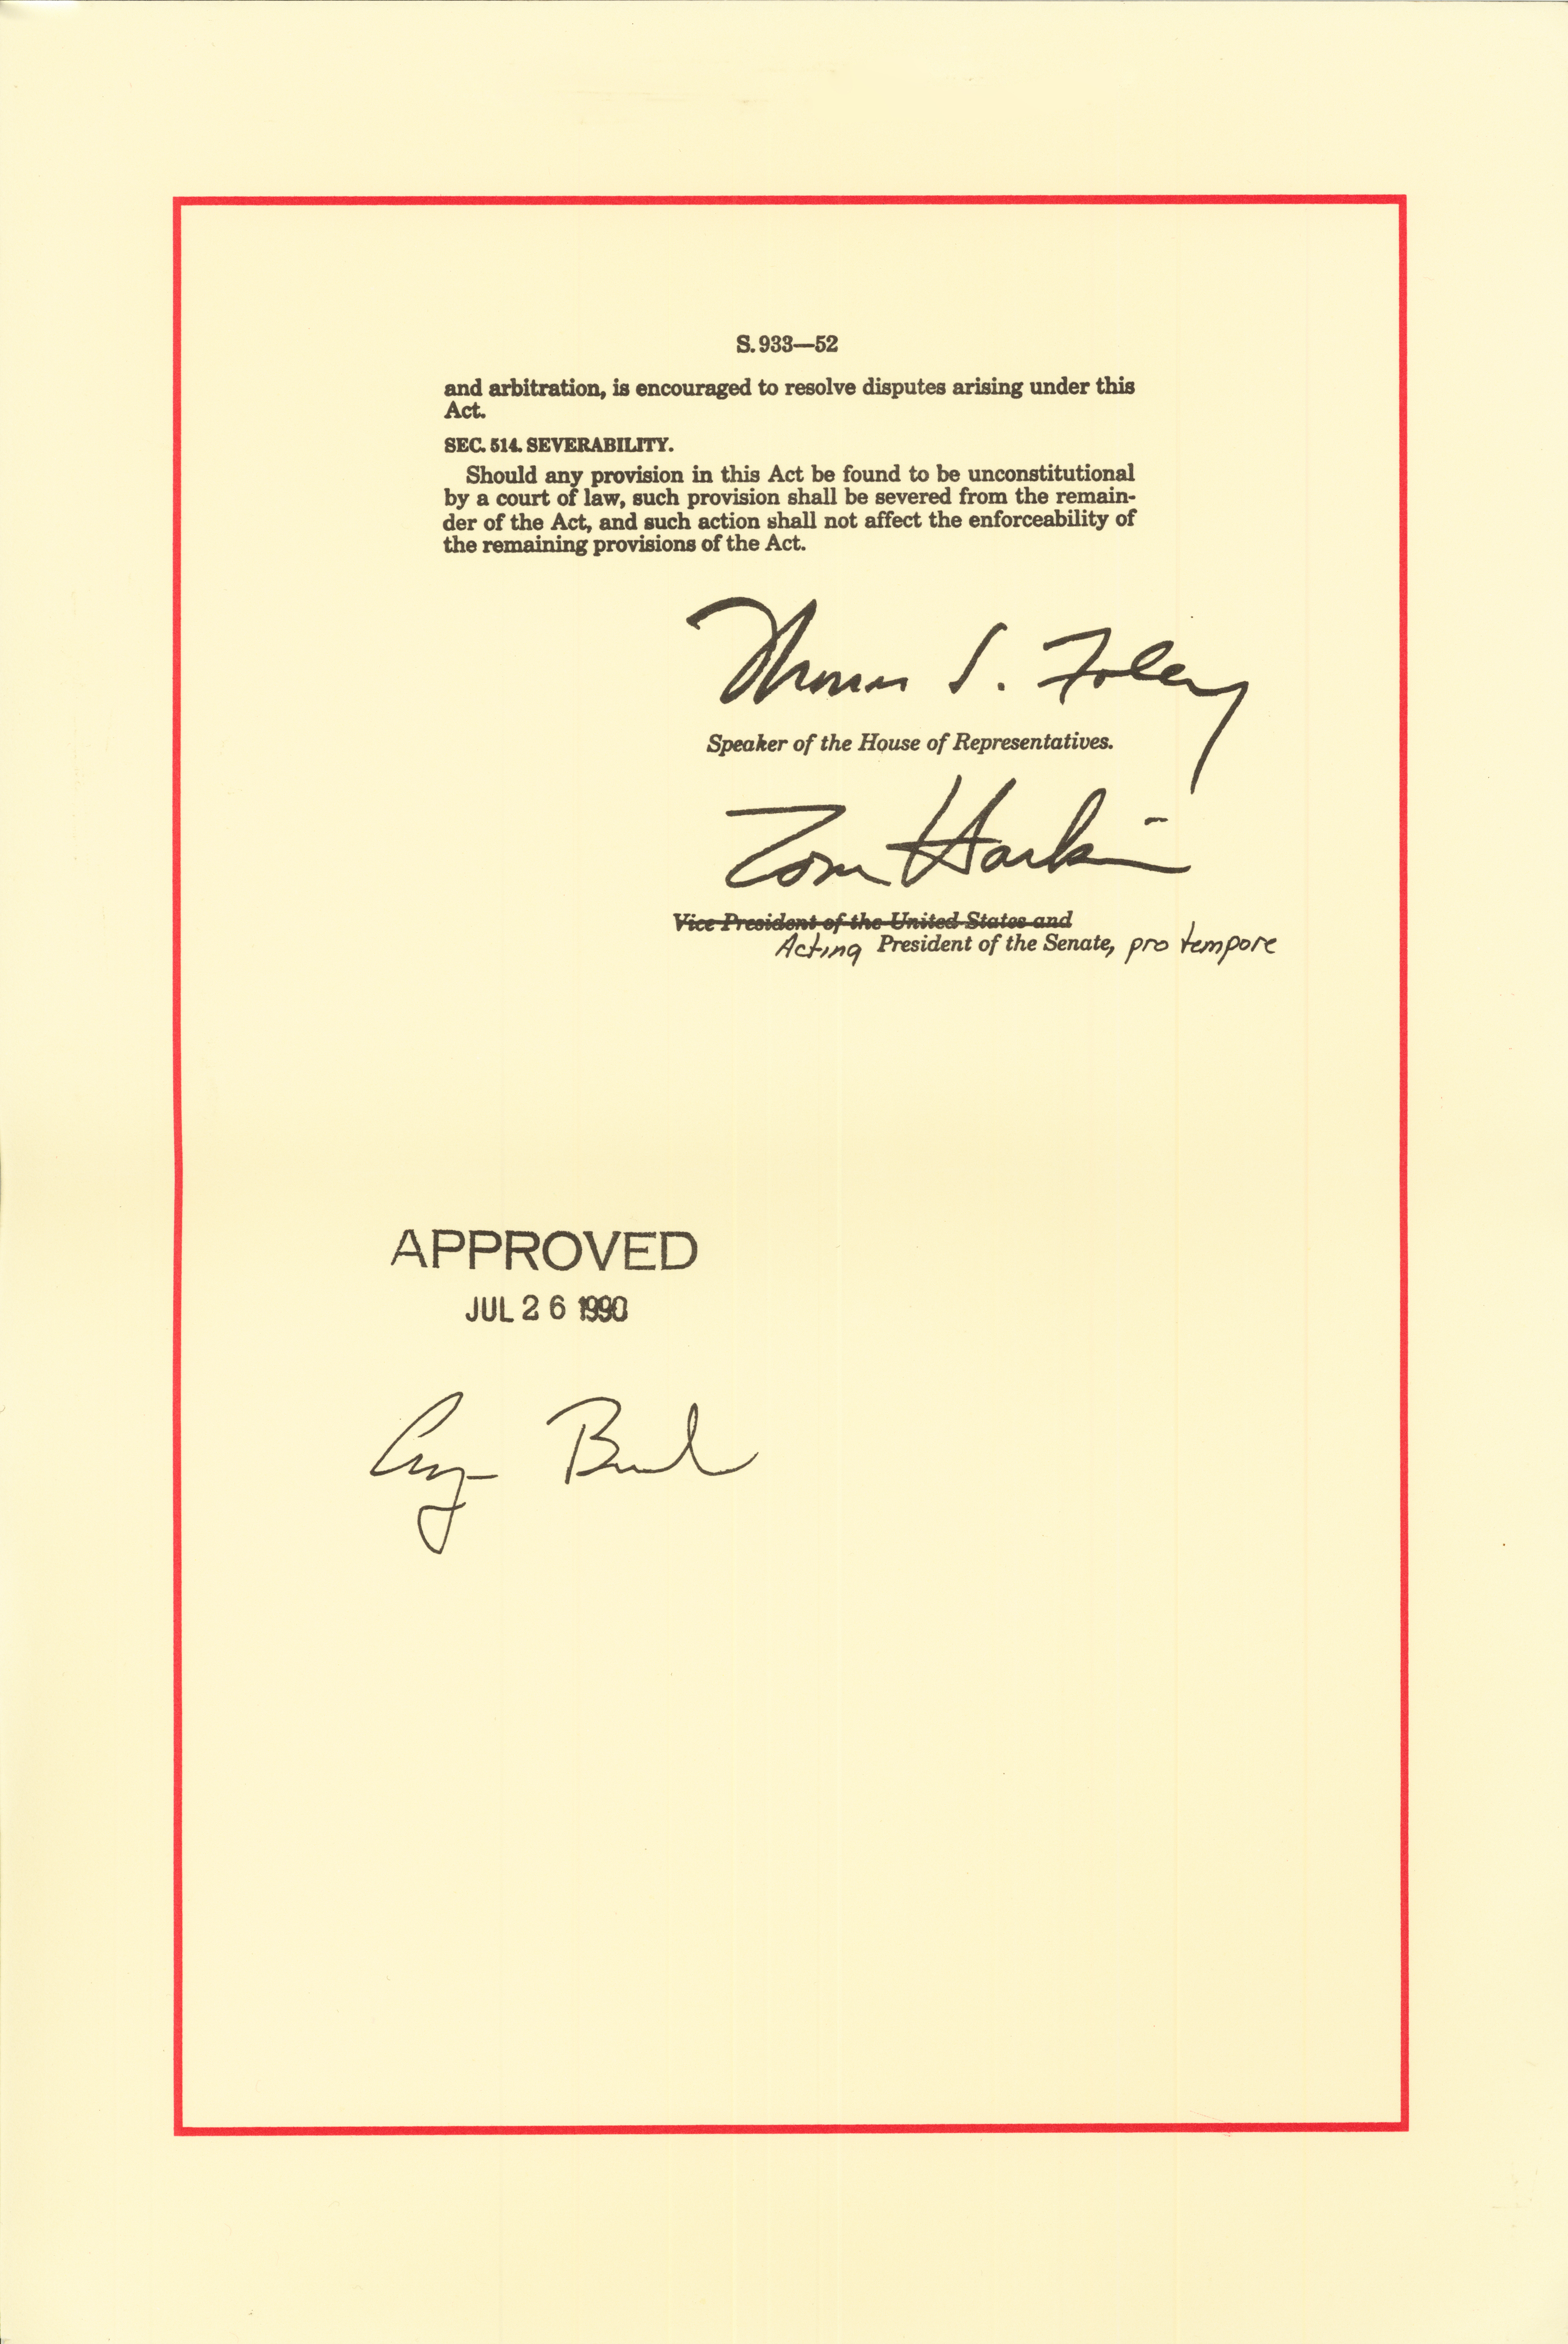 Americans with Disabilities Act of 1990, July 26, 1990, signature page. (National Archives Identifier 6037488)